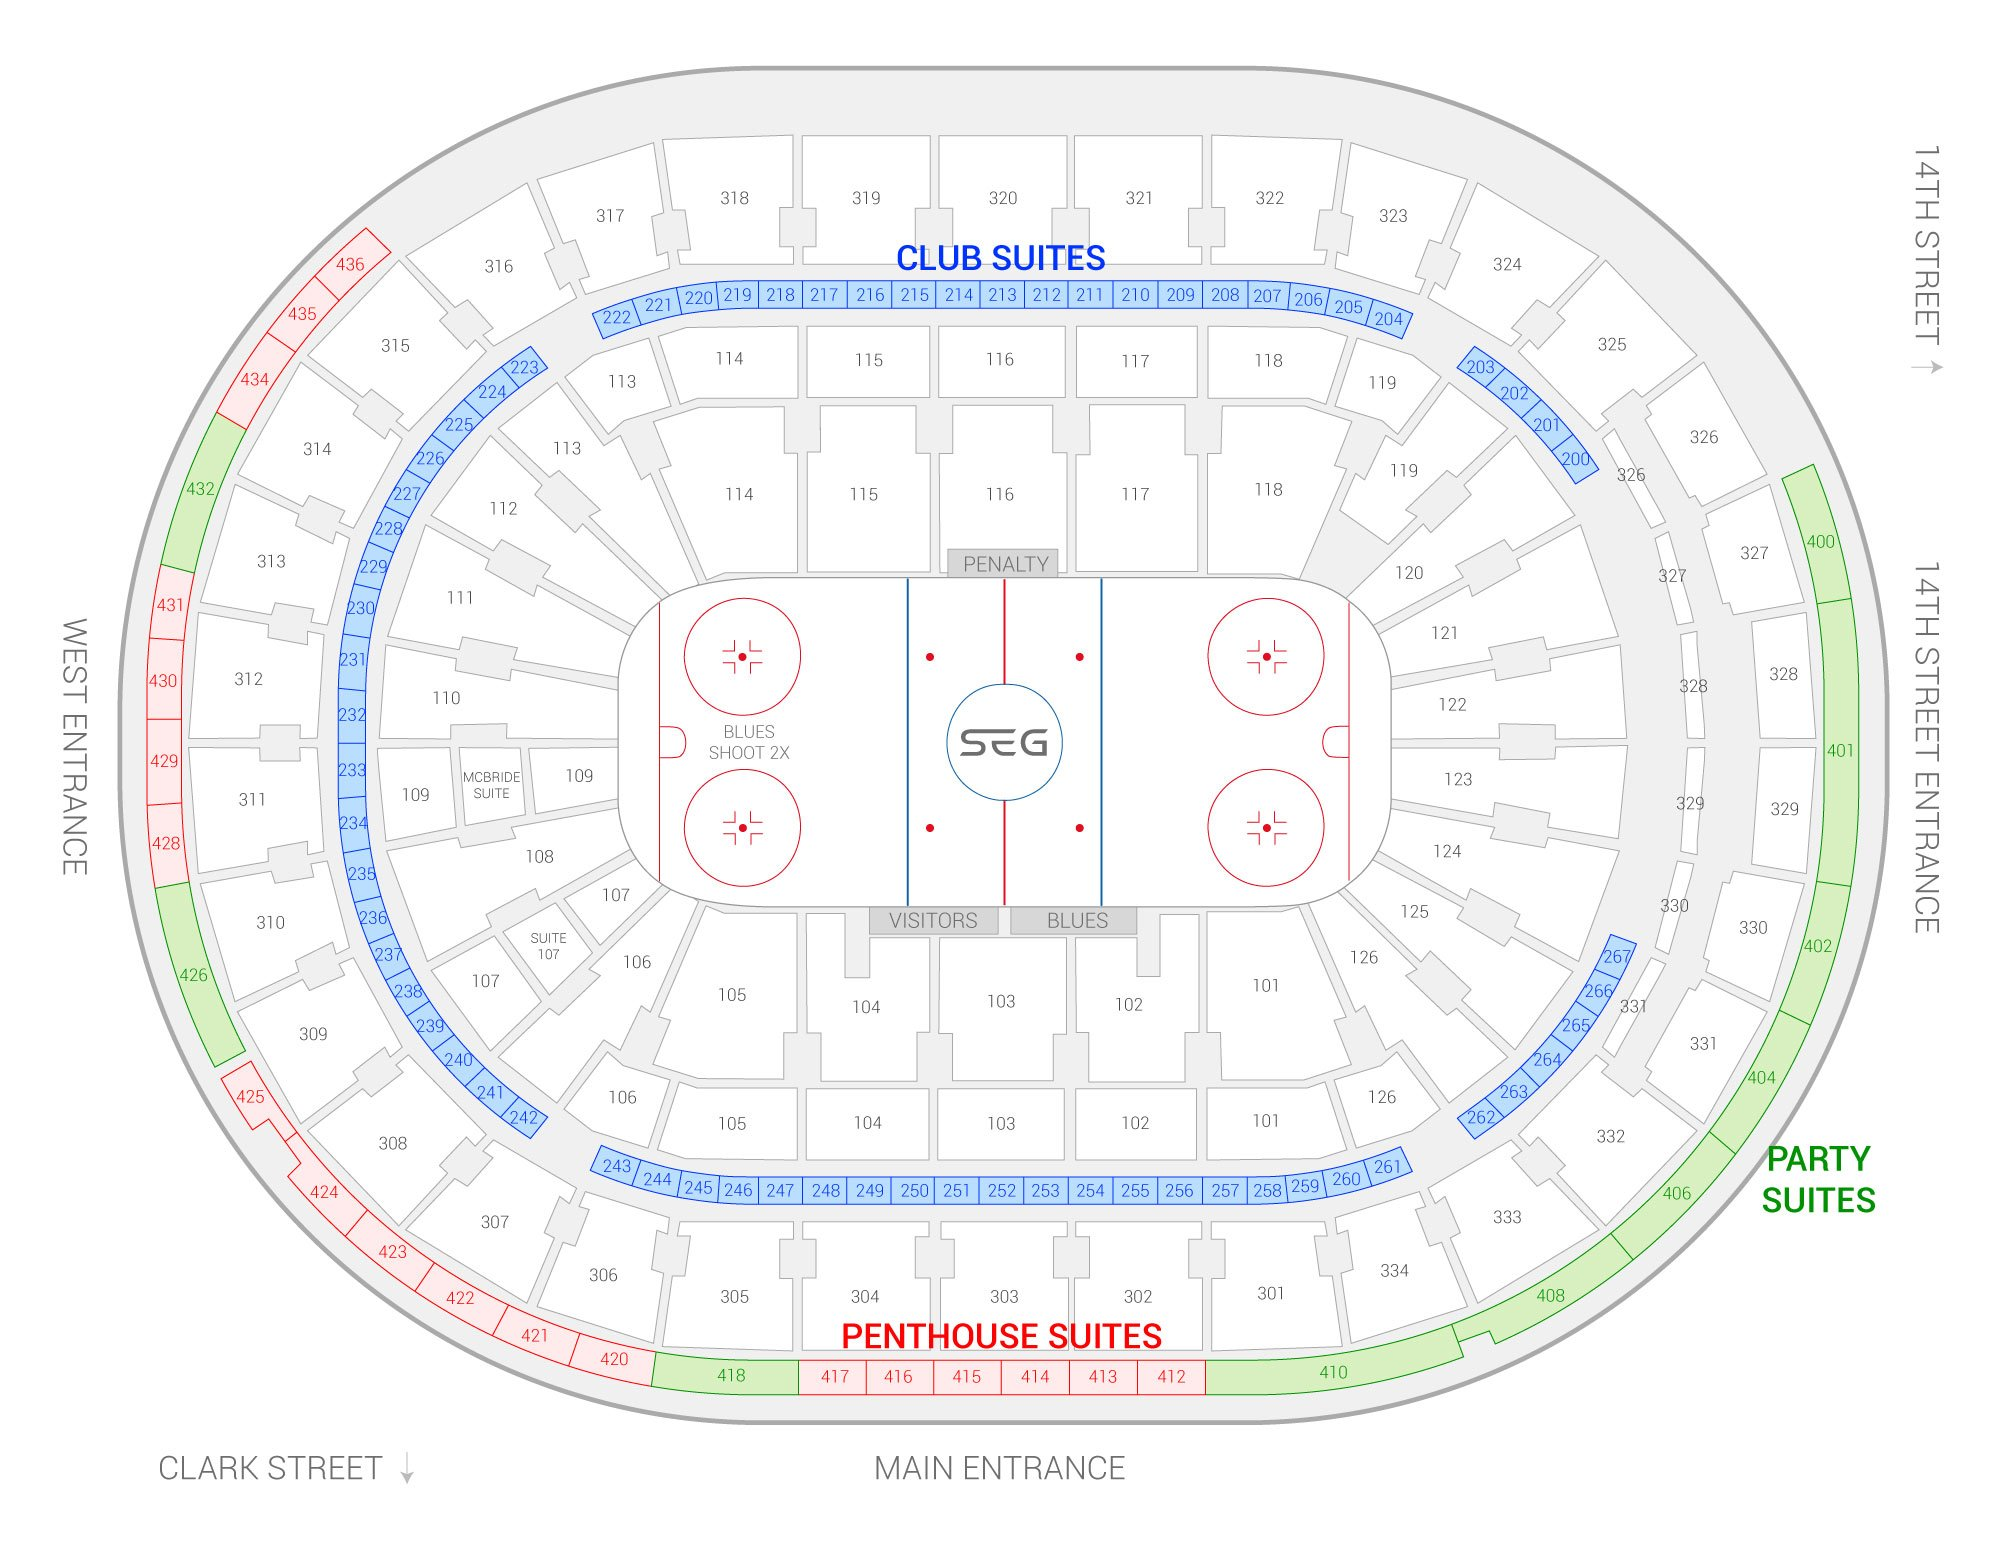 Enterprise Center / St. Louis Blues Suite Map and Seating Chart